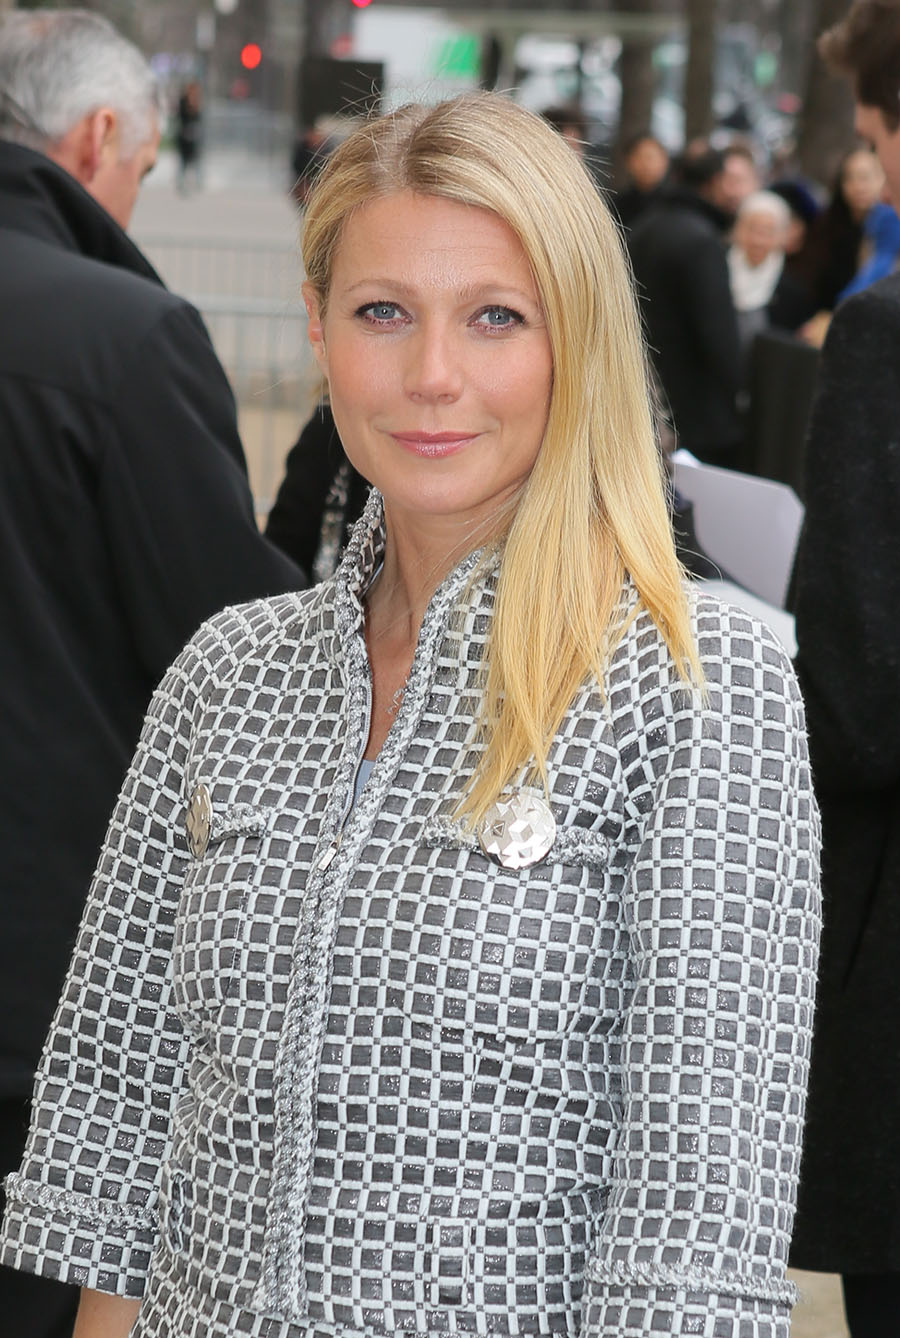 DL u299530 054. Gwyneth Paltrow